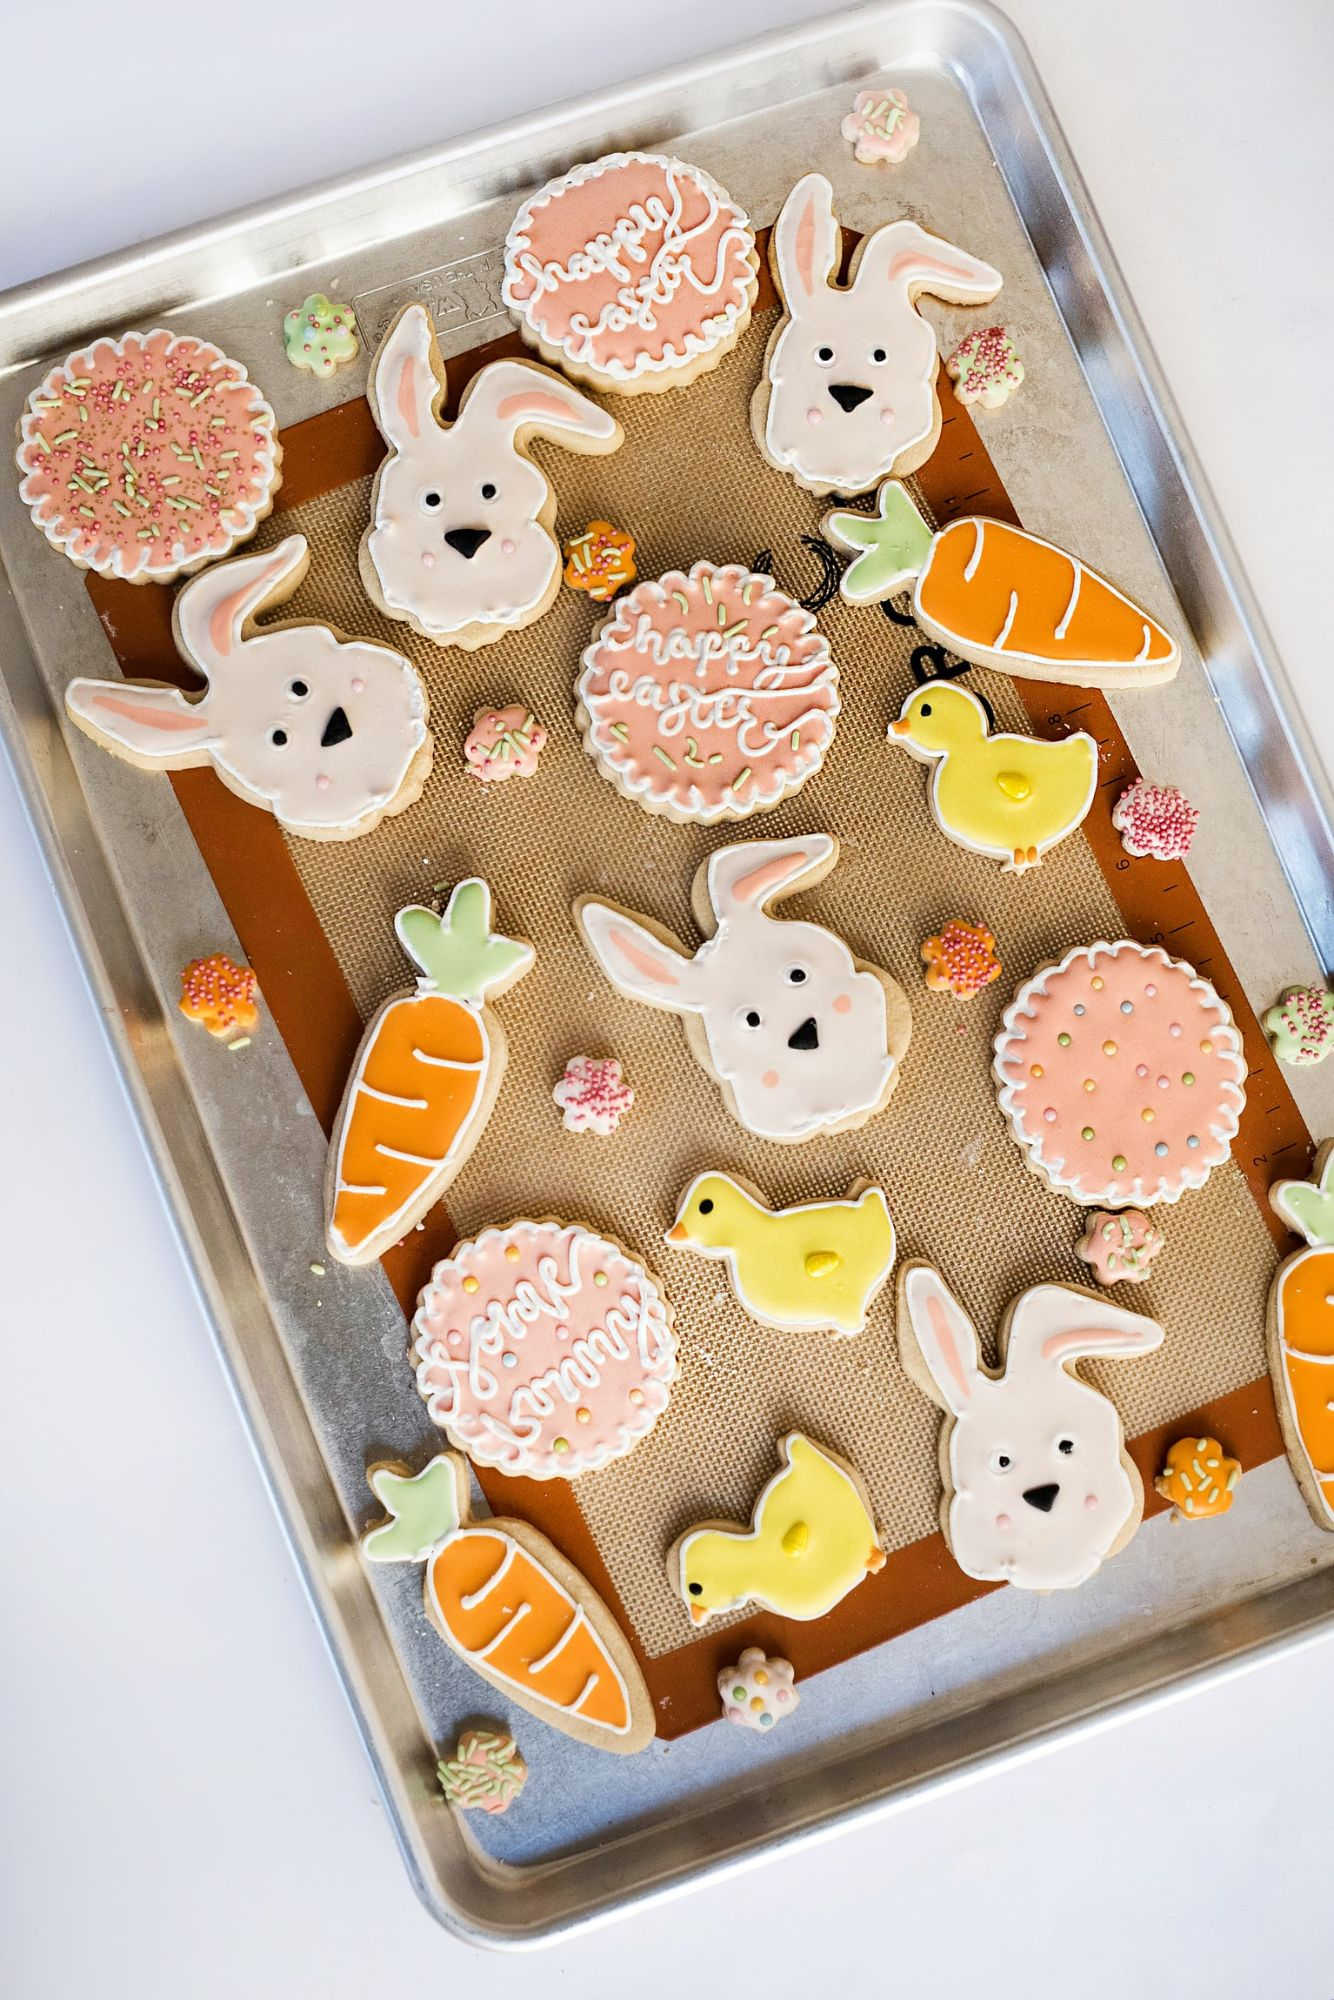 Variety of Easter biscuits